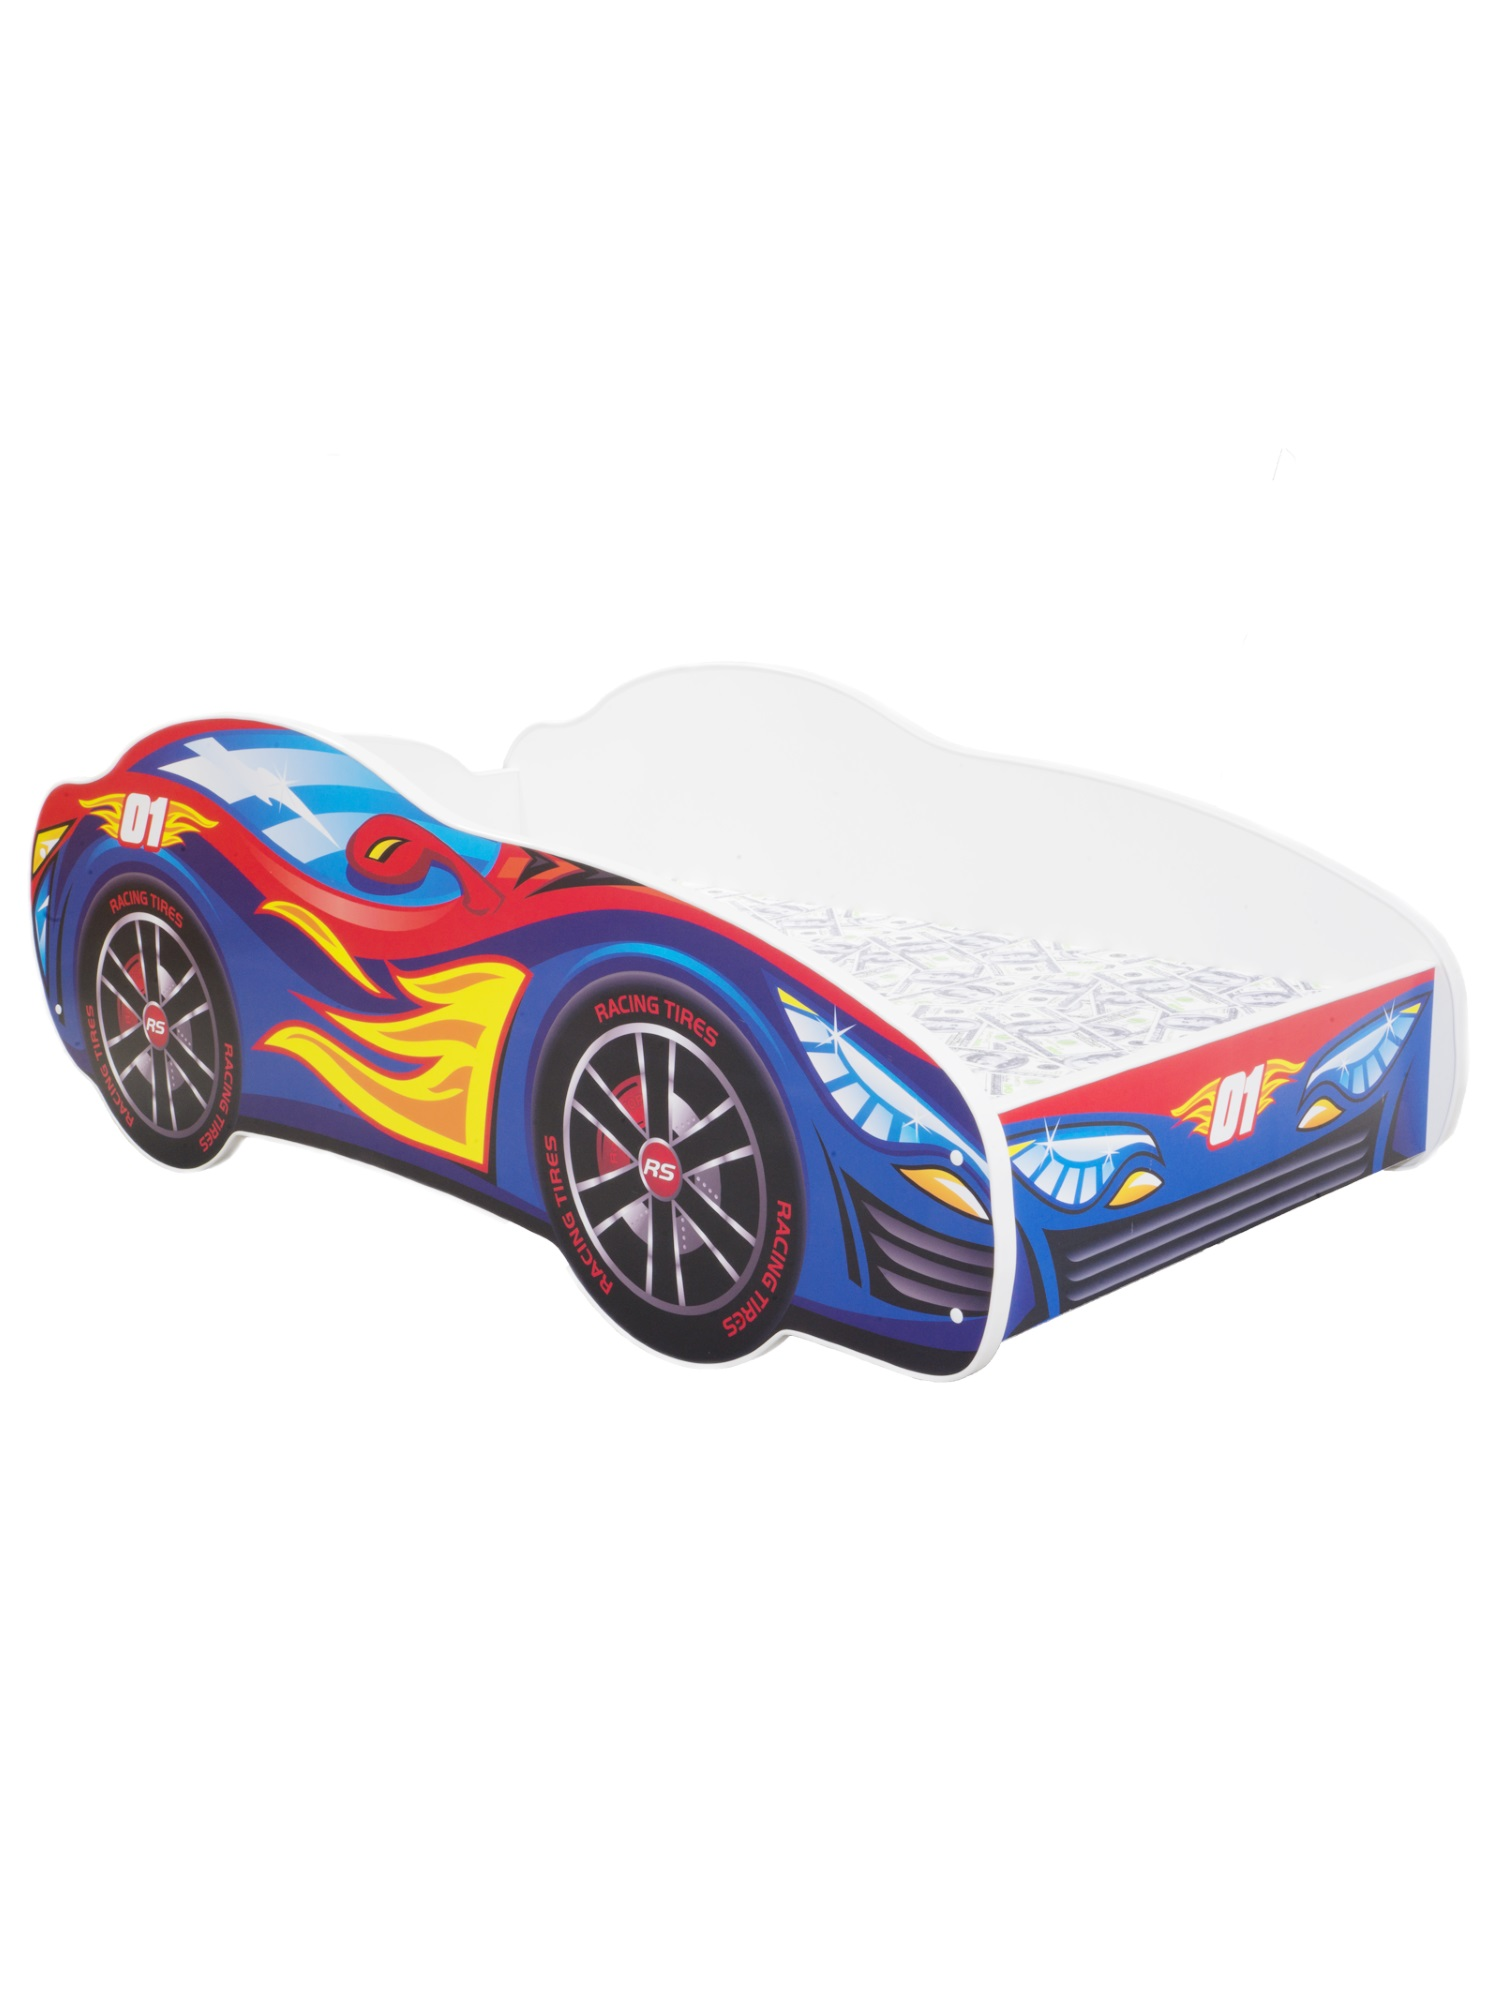 Racing Car Red-Blue – 01